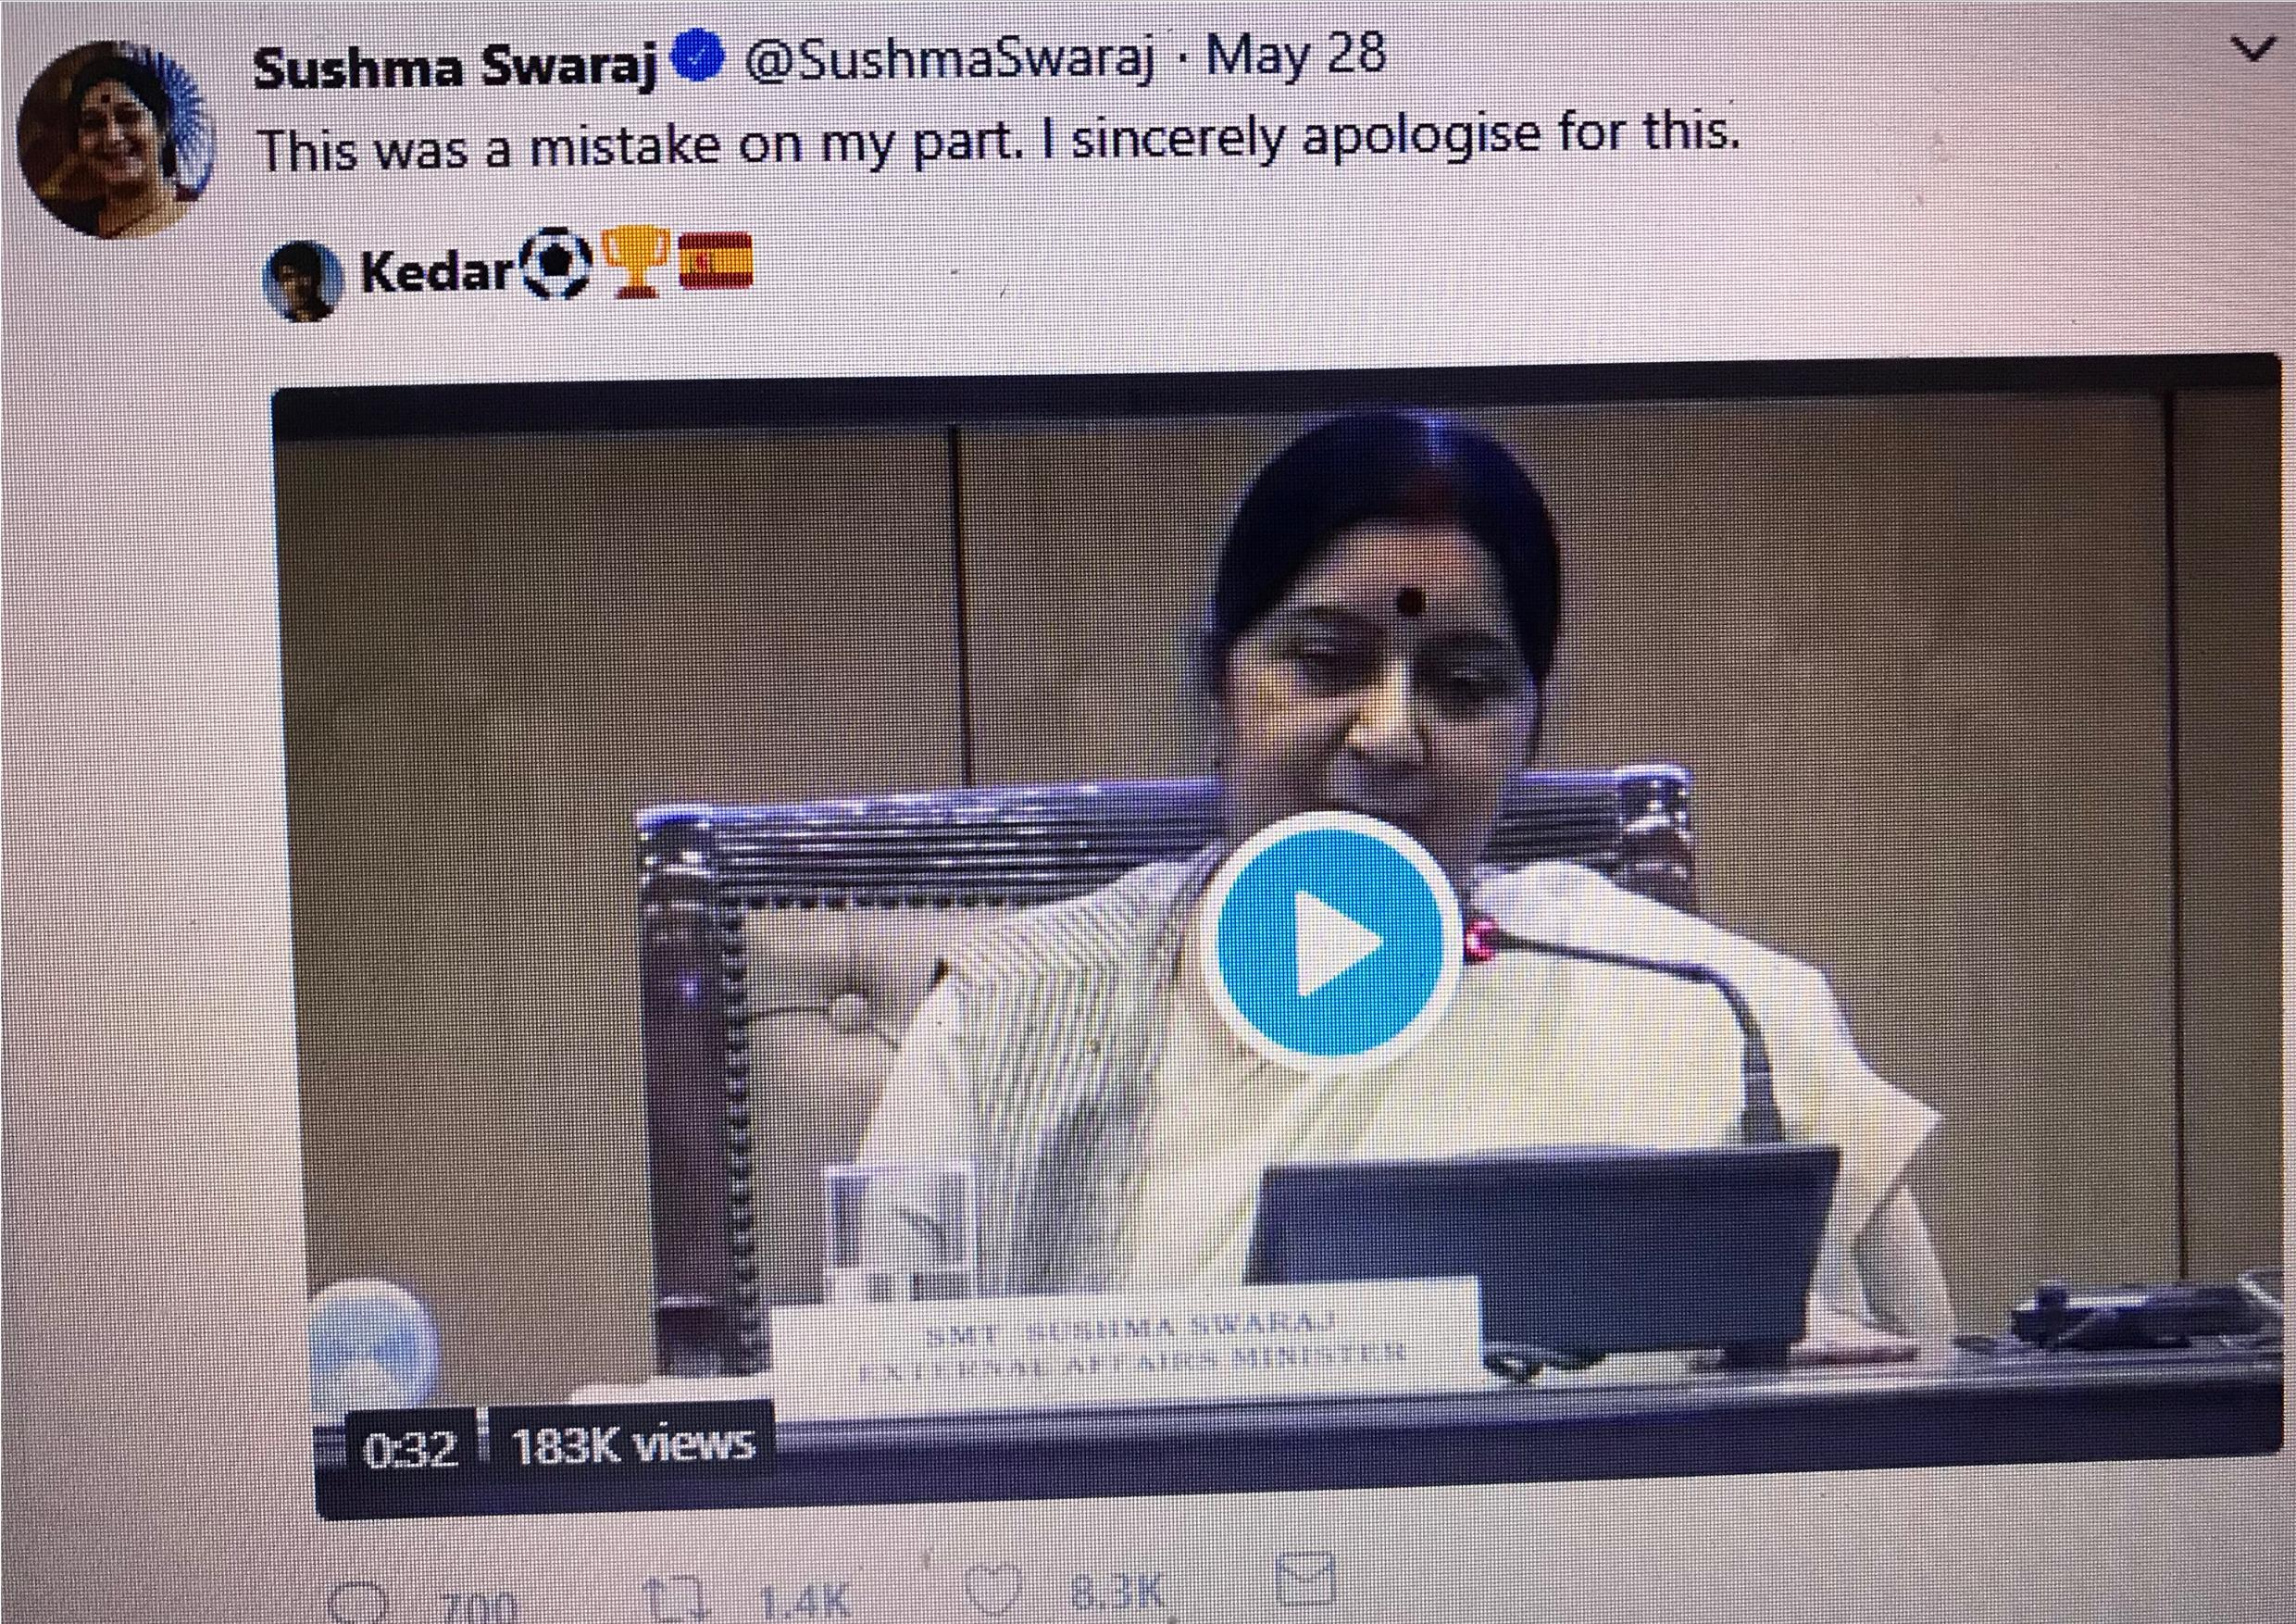 Sushma apology